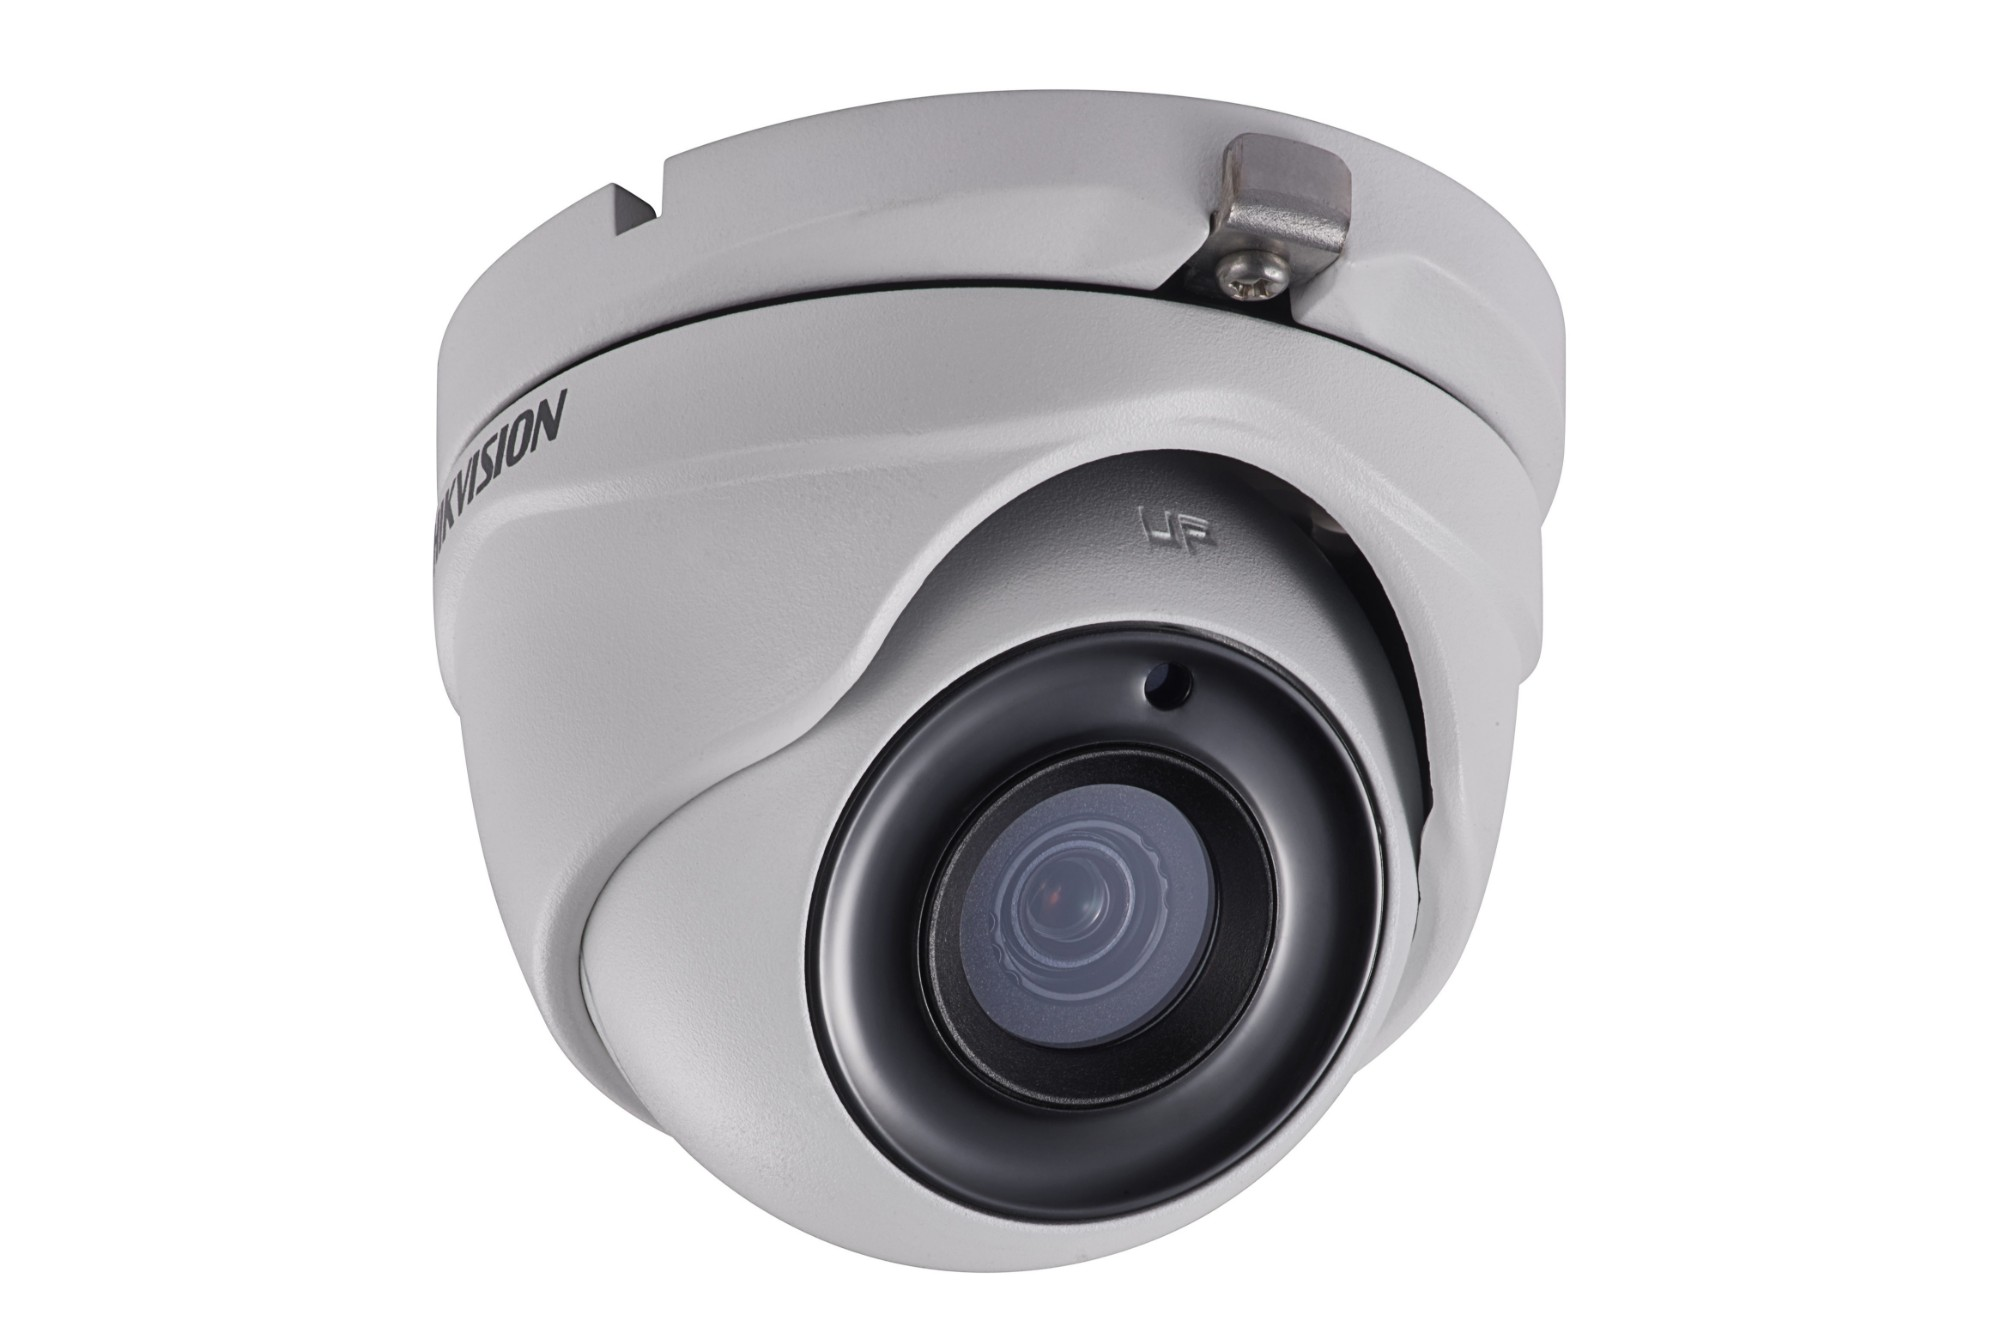 Hikvision 5MP 2.8mm fixed lens turret Analogue Day & Night Eyeball POC camera with IR 20m IP67– White